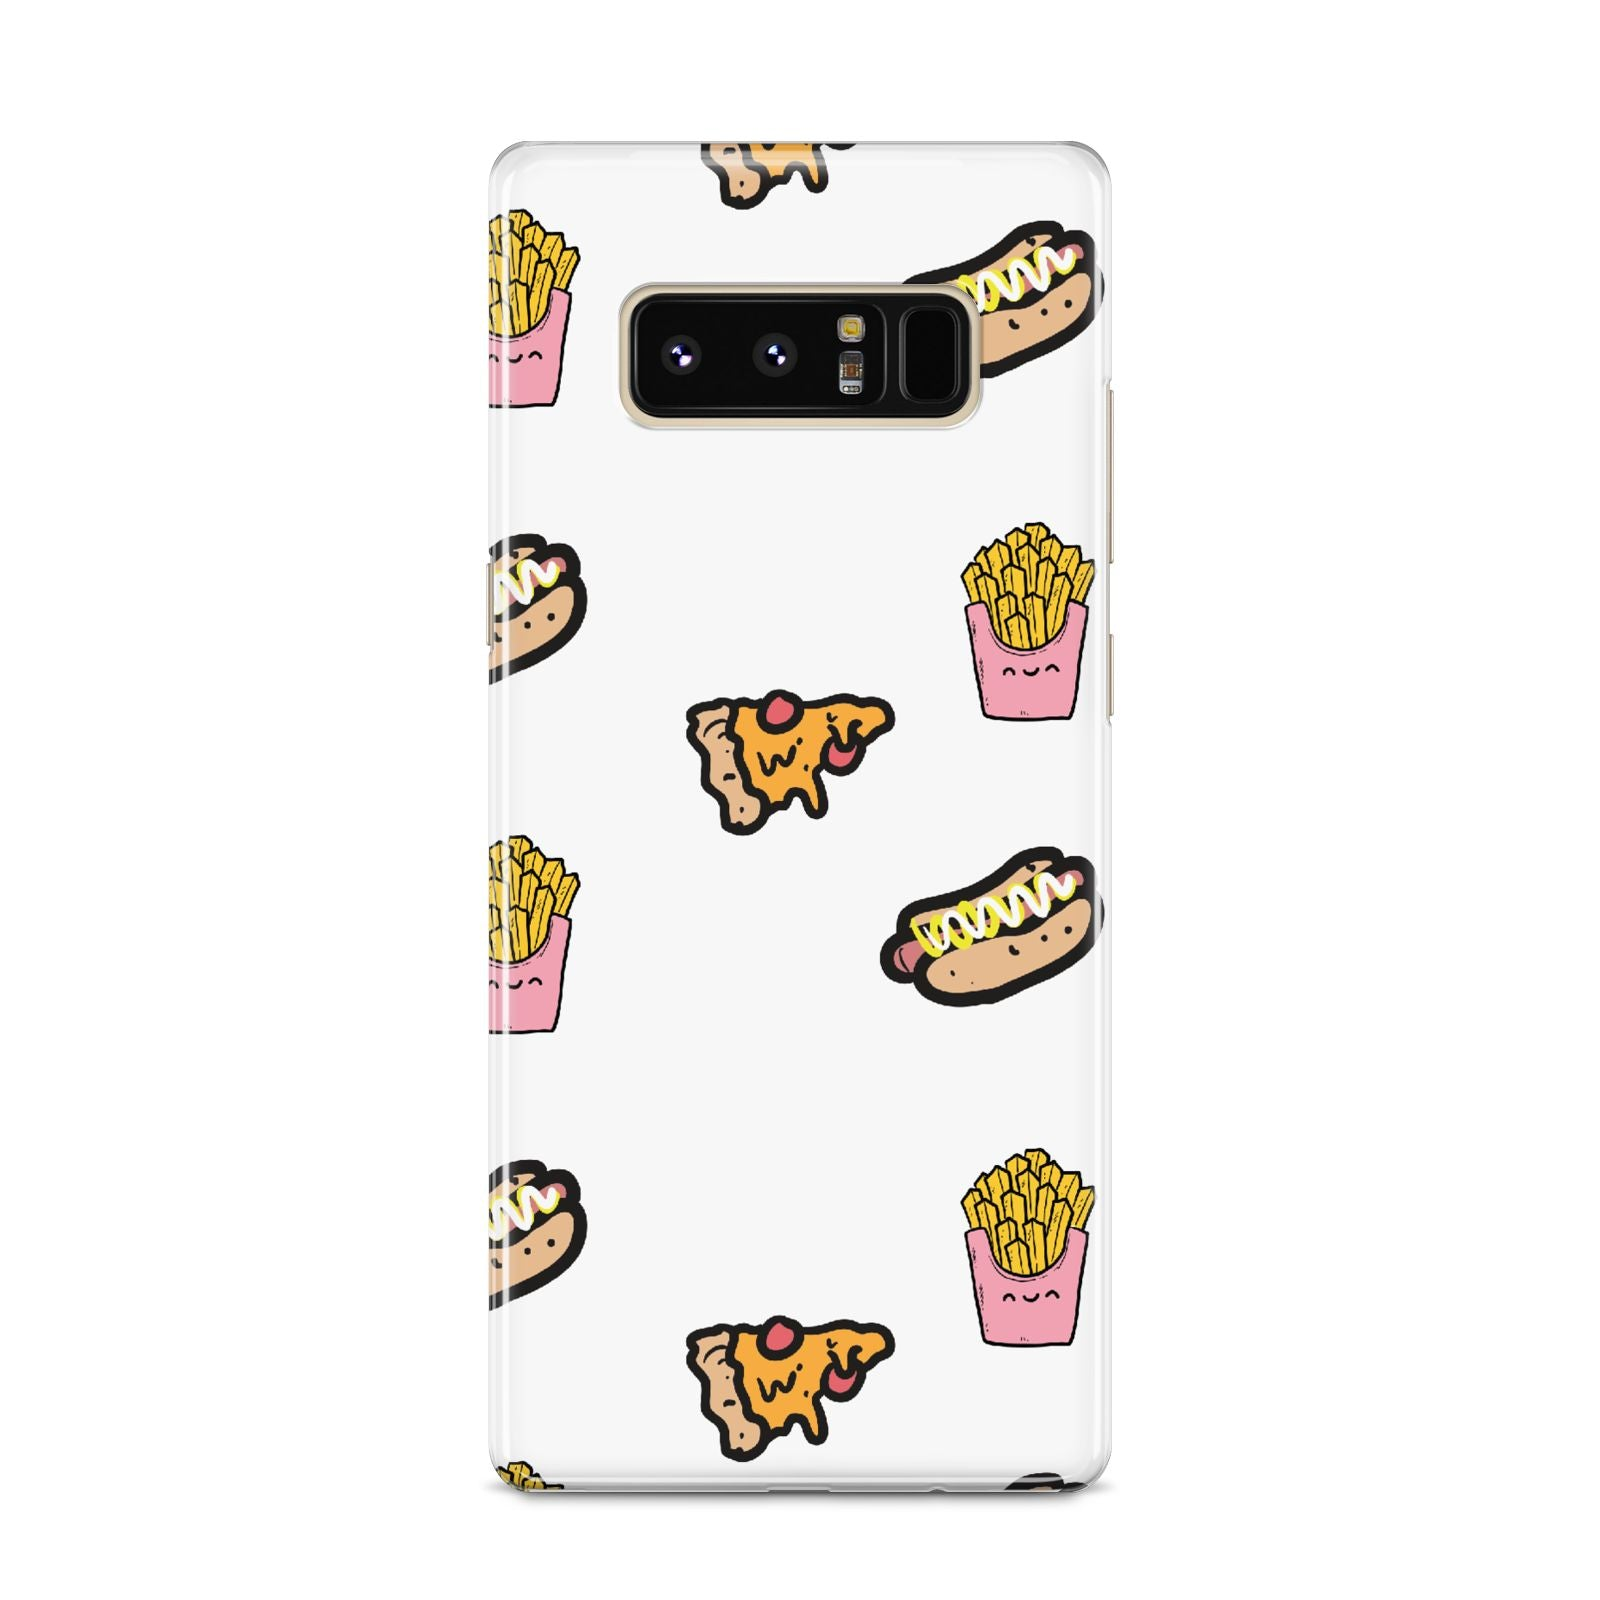 Fries Pizza Hot Dog Samsung Galaxy S8 Case